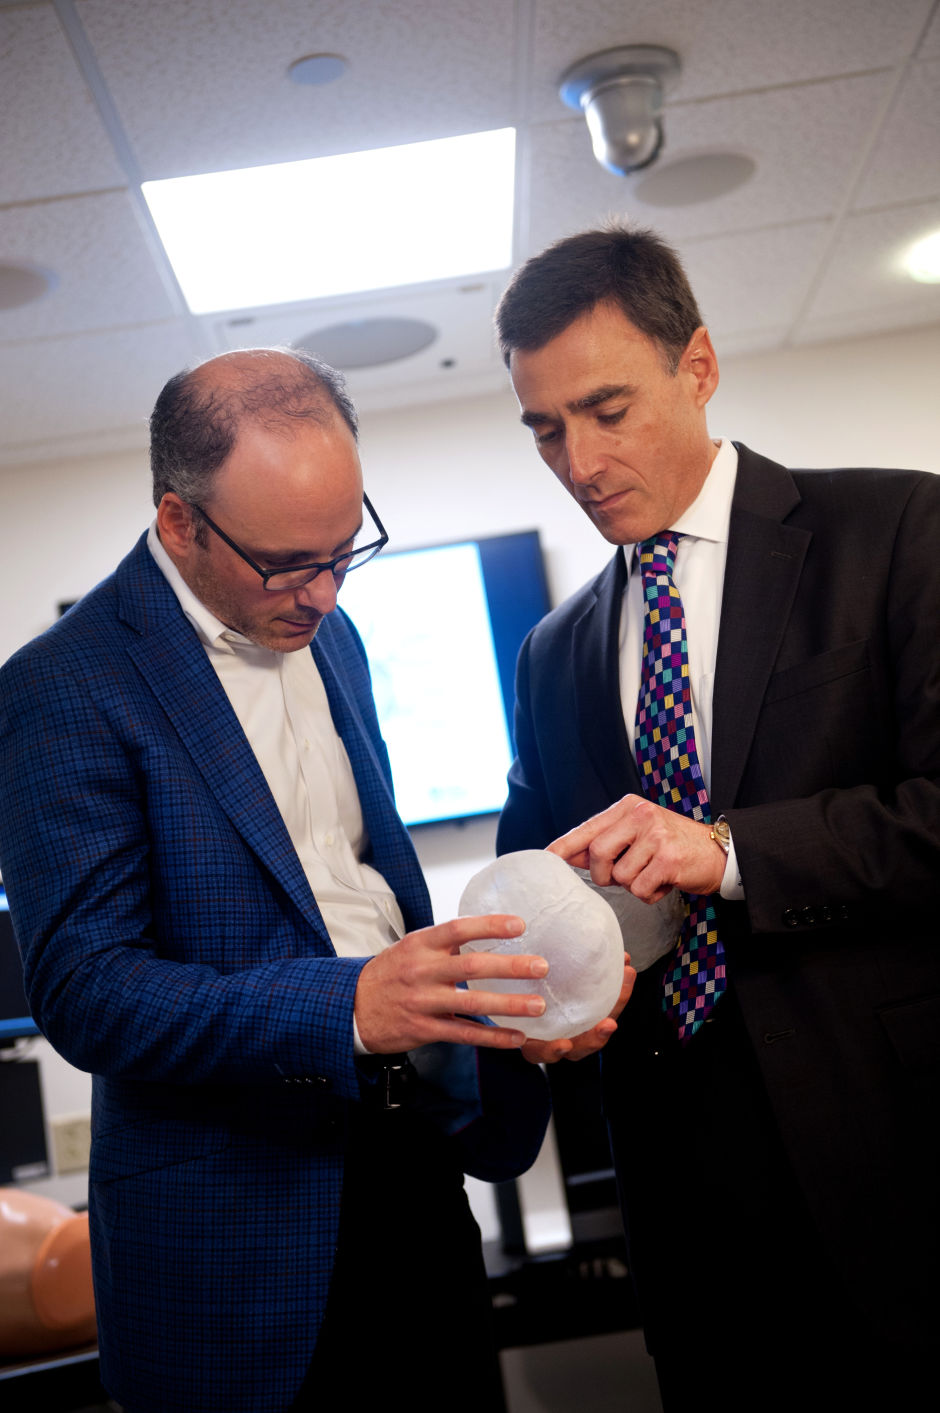 Dr. Peter Weinstock, left, and Dr. John G. Meara examining a 3-D model of Violet's skull. (Photo credit: Katherine C. Cohen/Boston Children's Hospital)